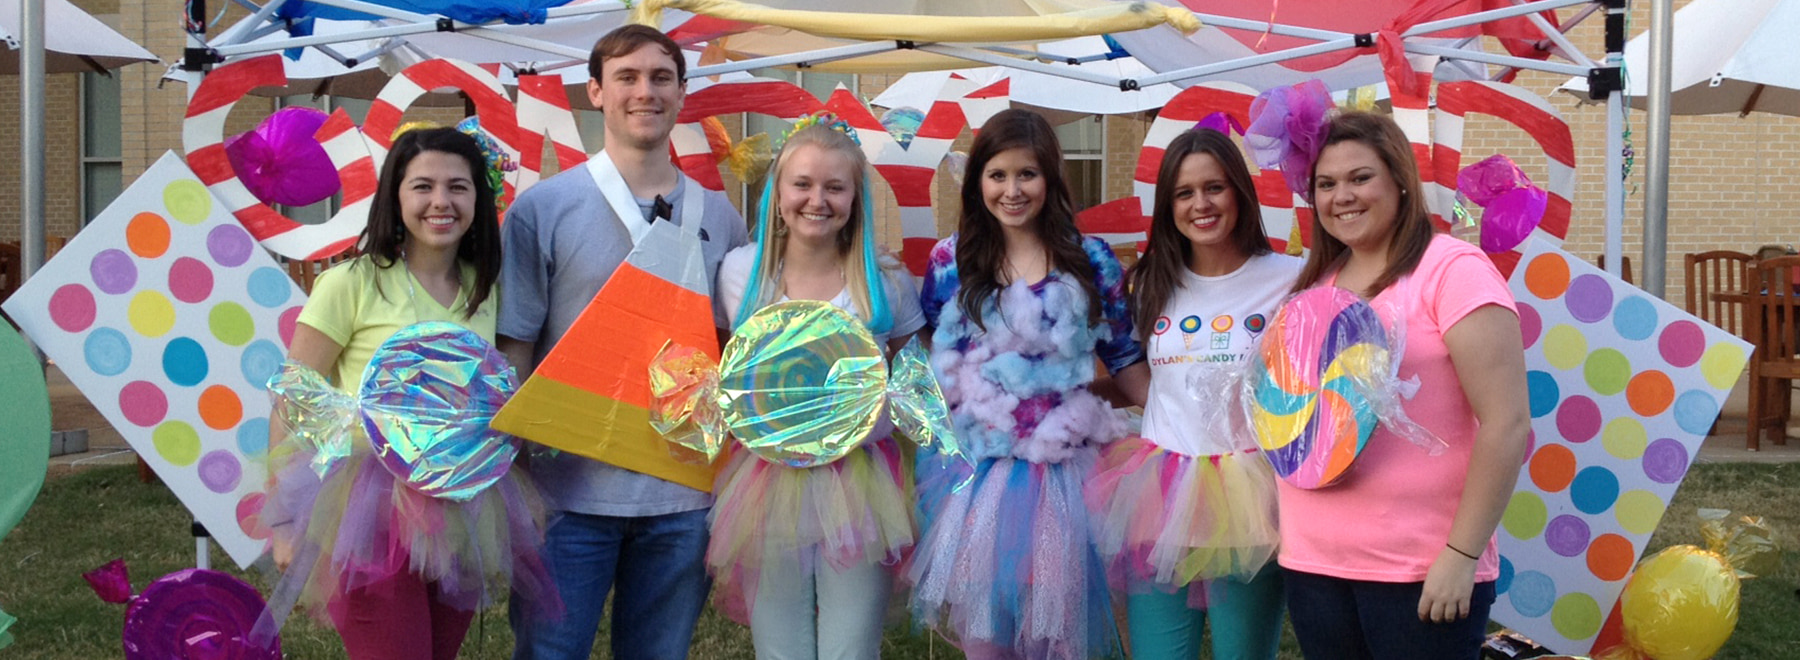 Group of male and female students pose for candy land event in colorful costumes.